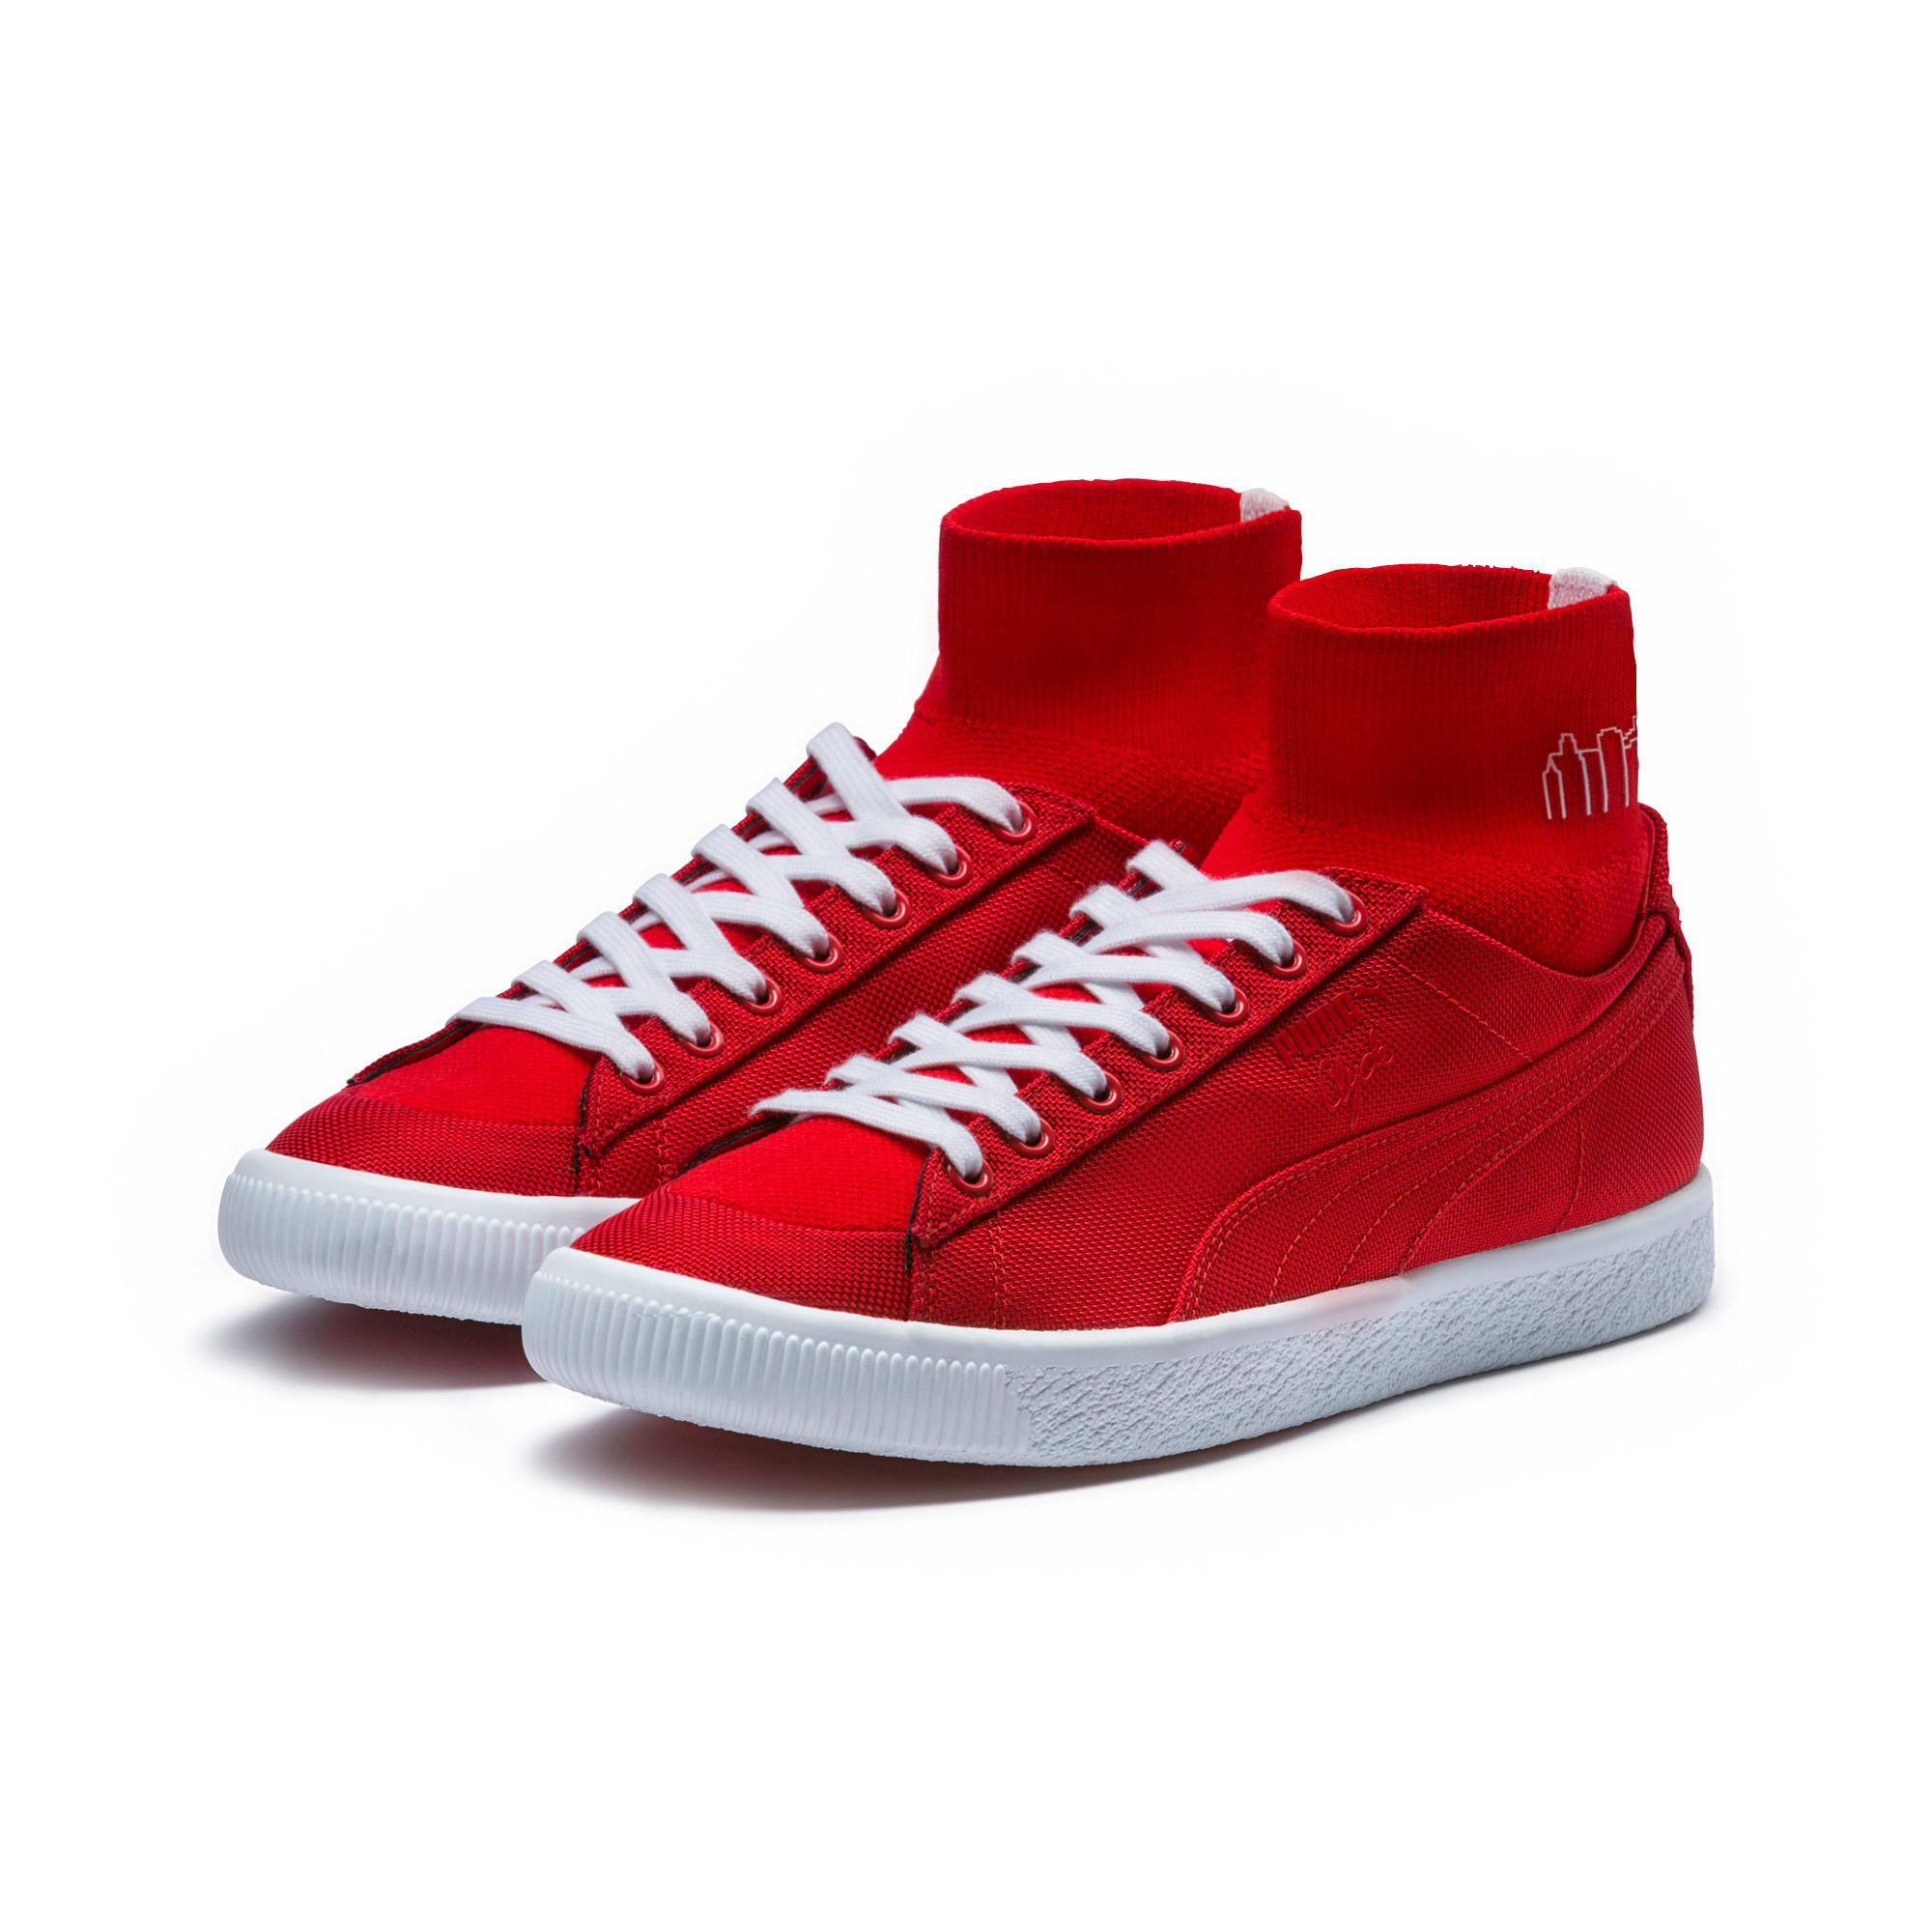 Thumbnail 2 of PUMA x MANHATTAN PORTAGE Clyde Sock Sneakers, High Risk Red-High Risk Red, medium